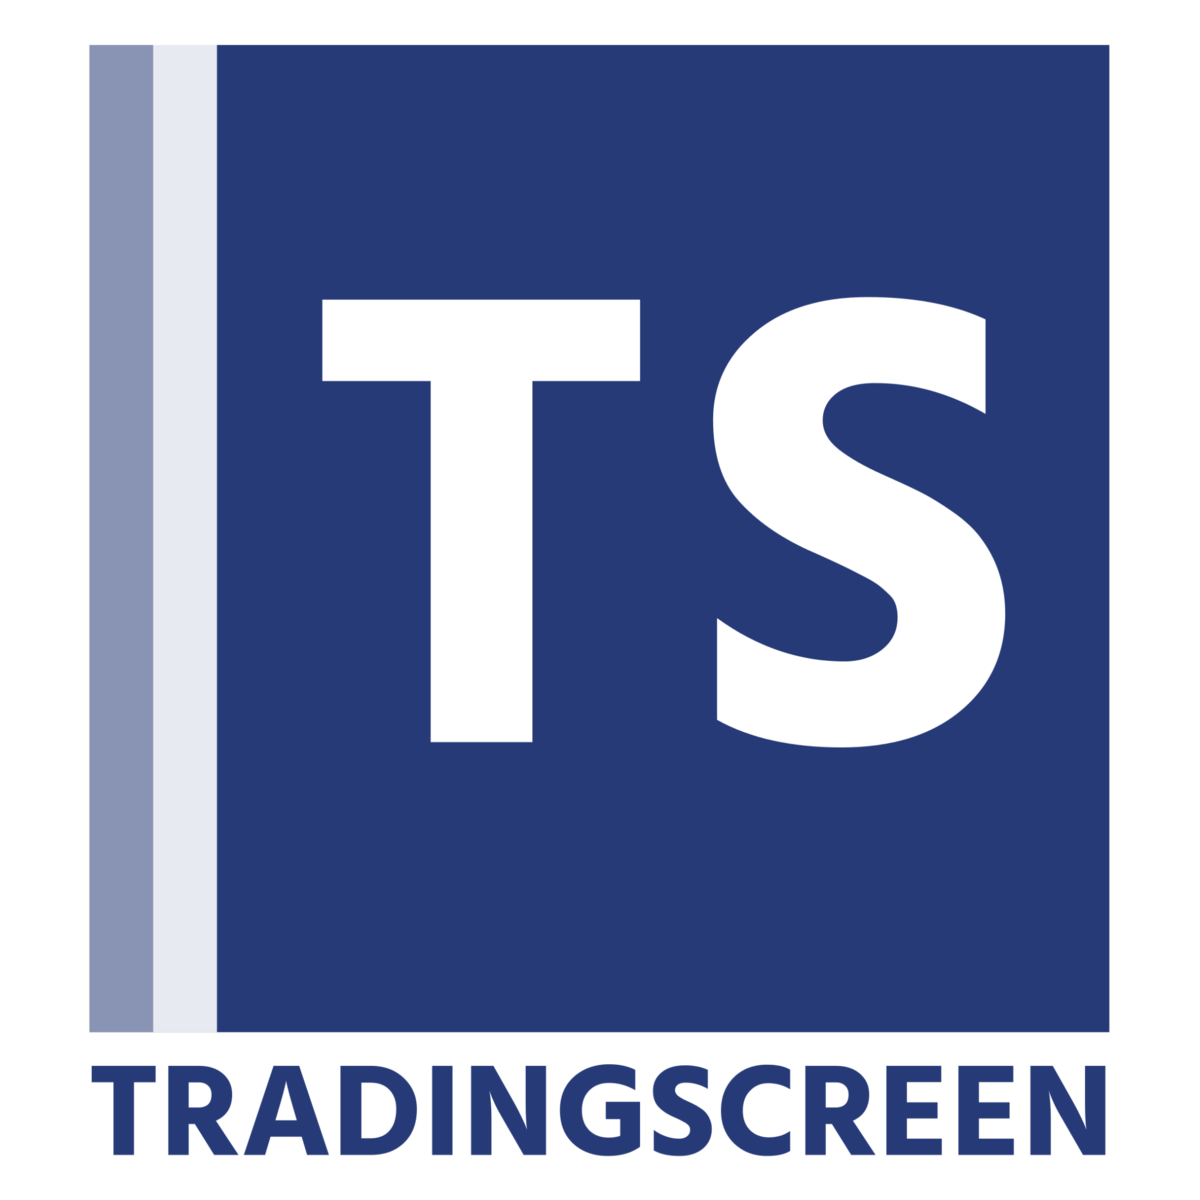 Screen based trading system wiki